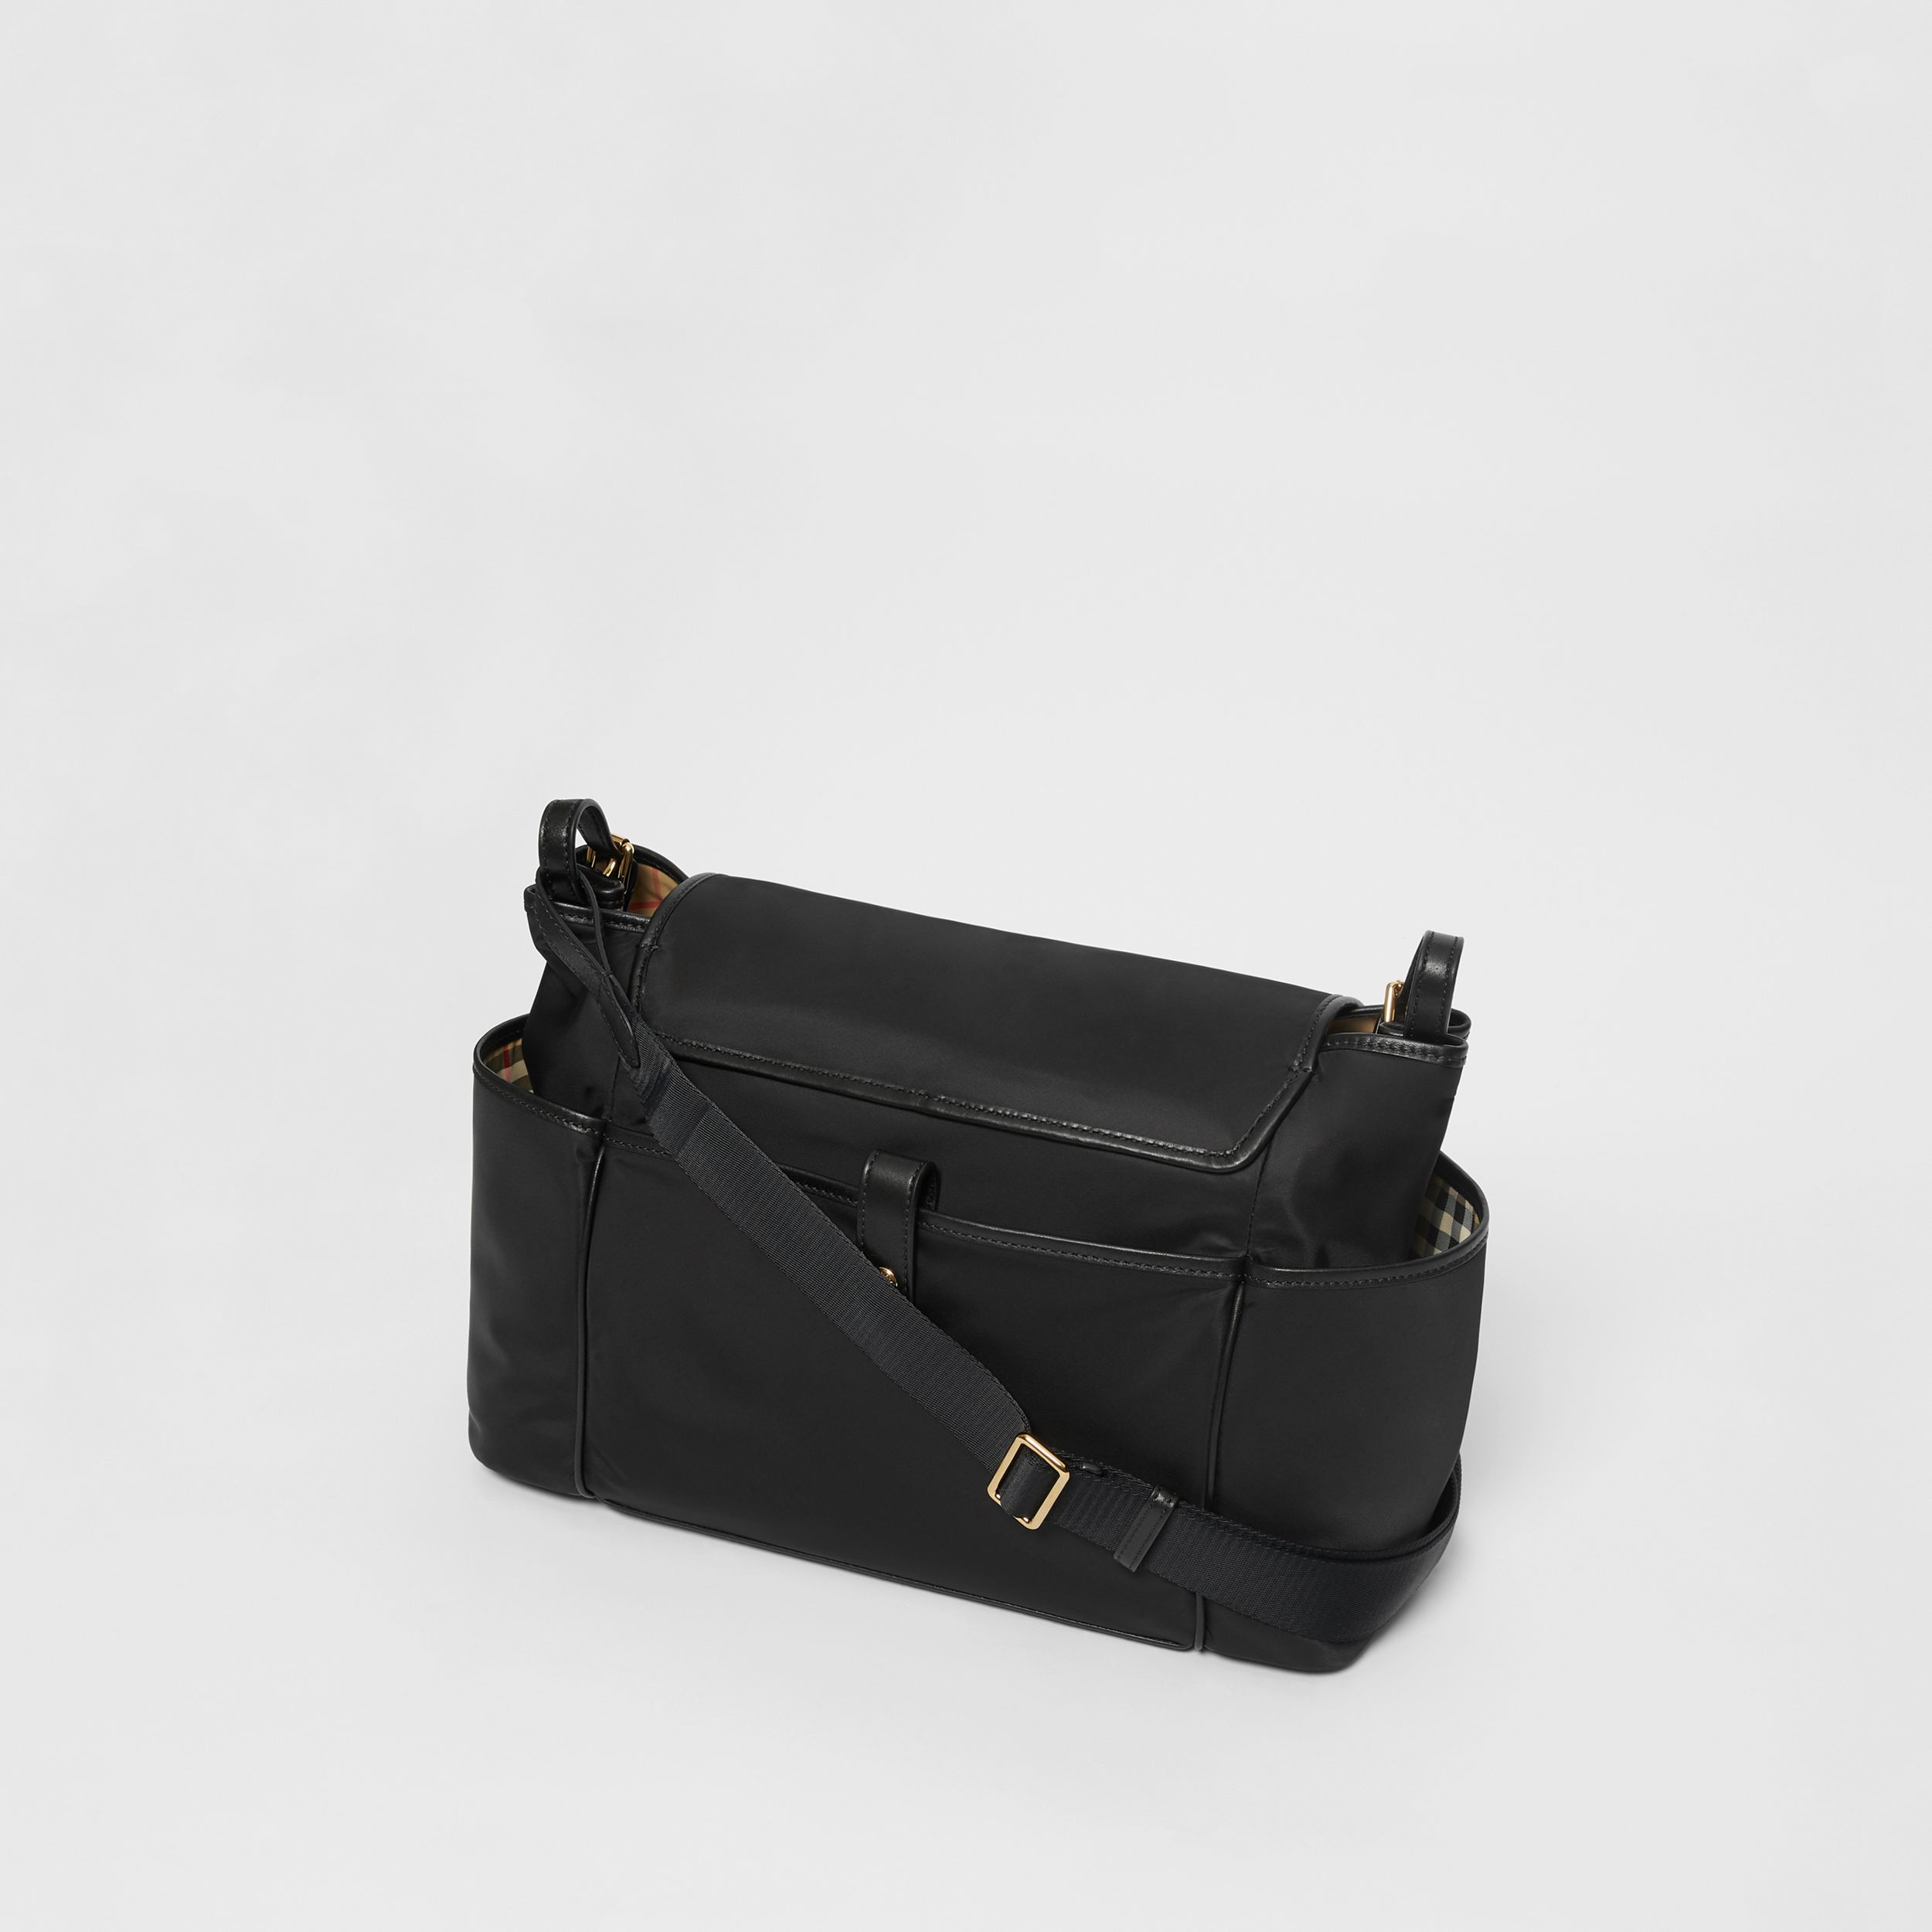 Logo Print Baby Changing Bag in Black - Children | Burberry - 3